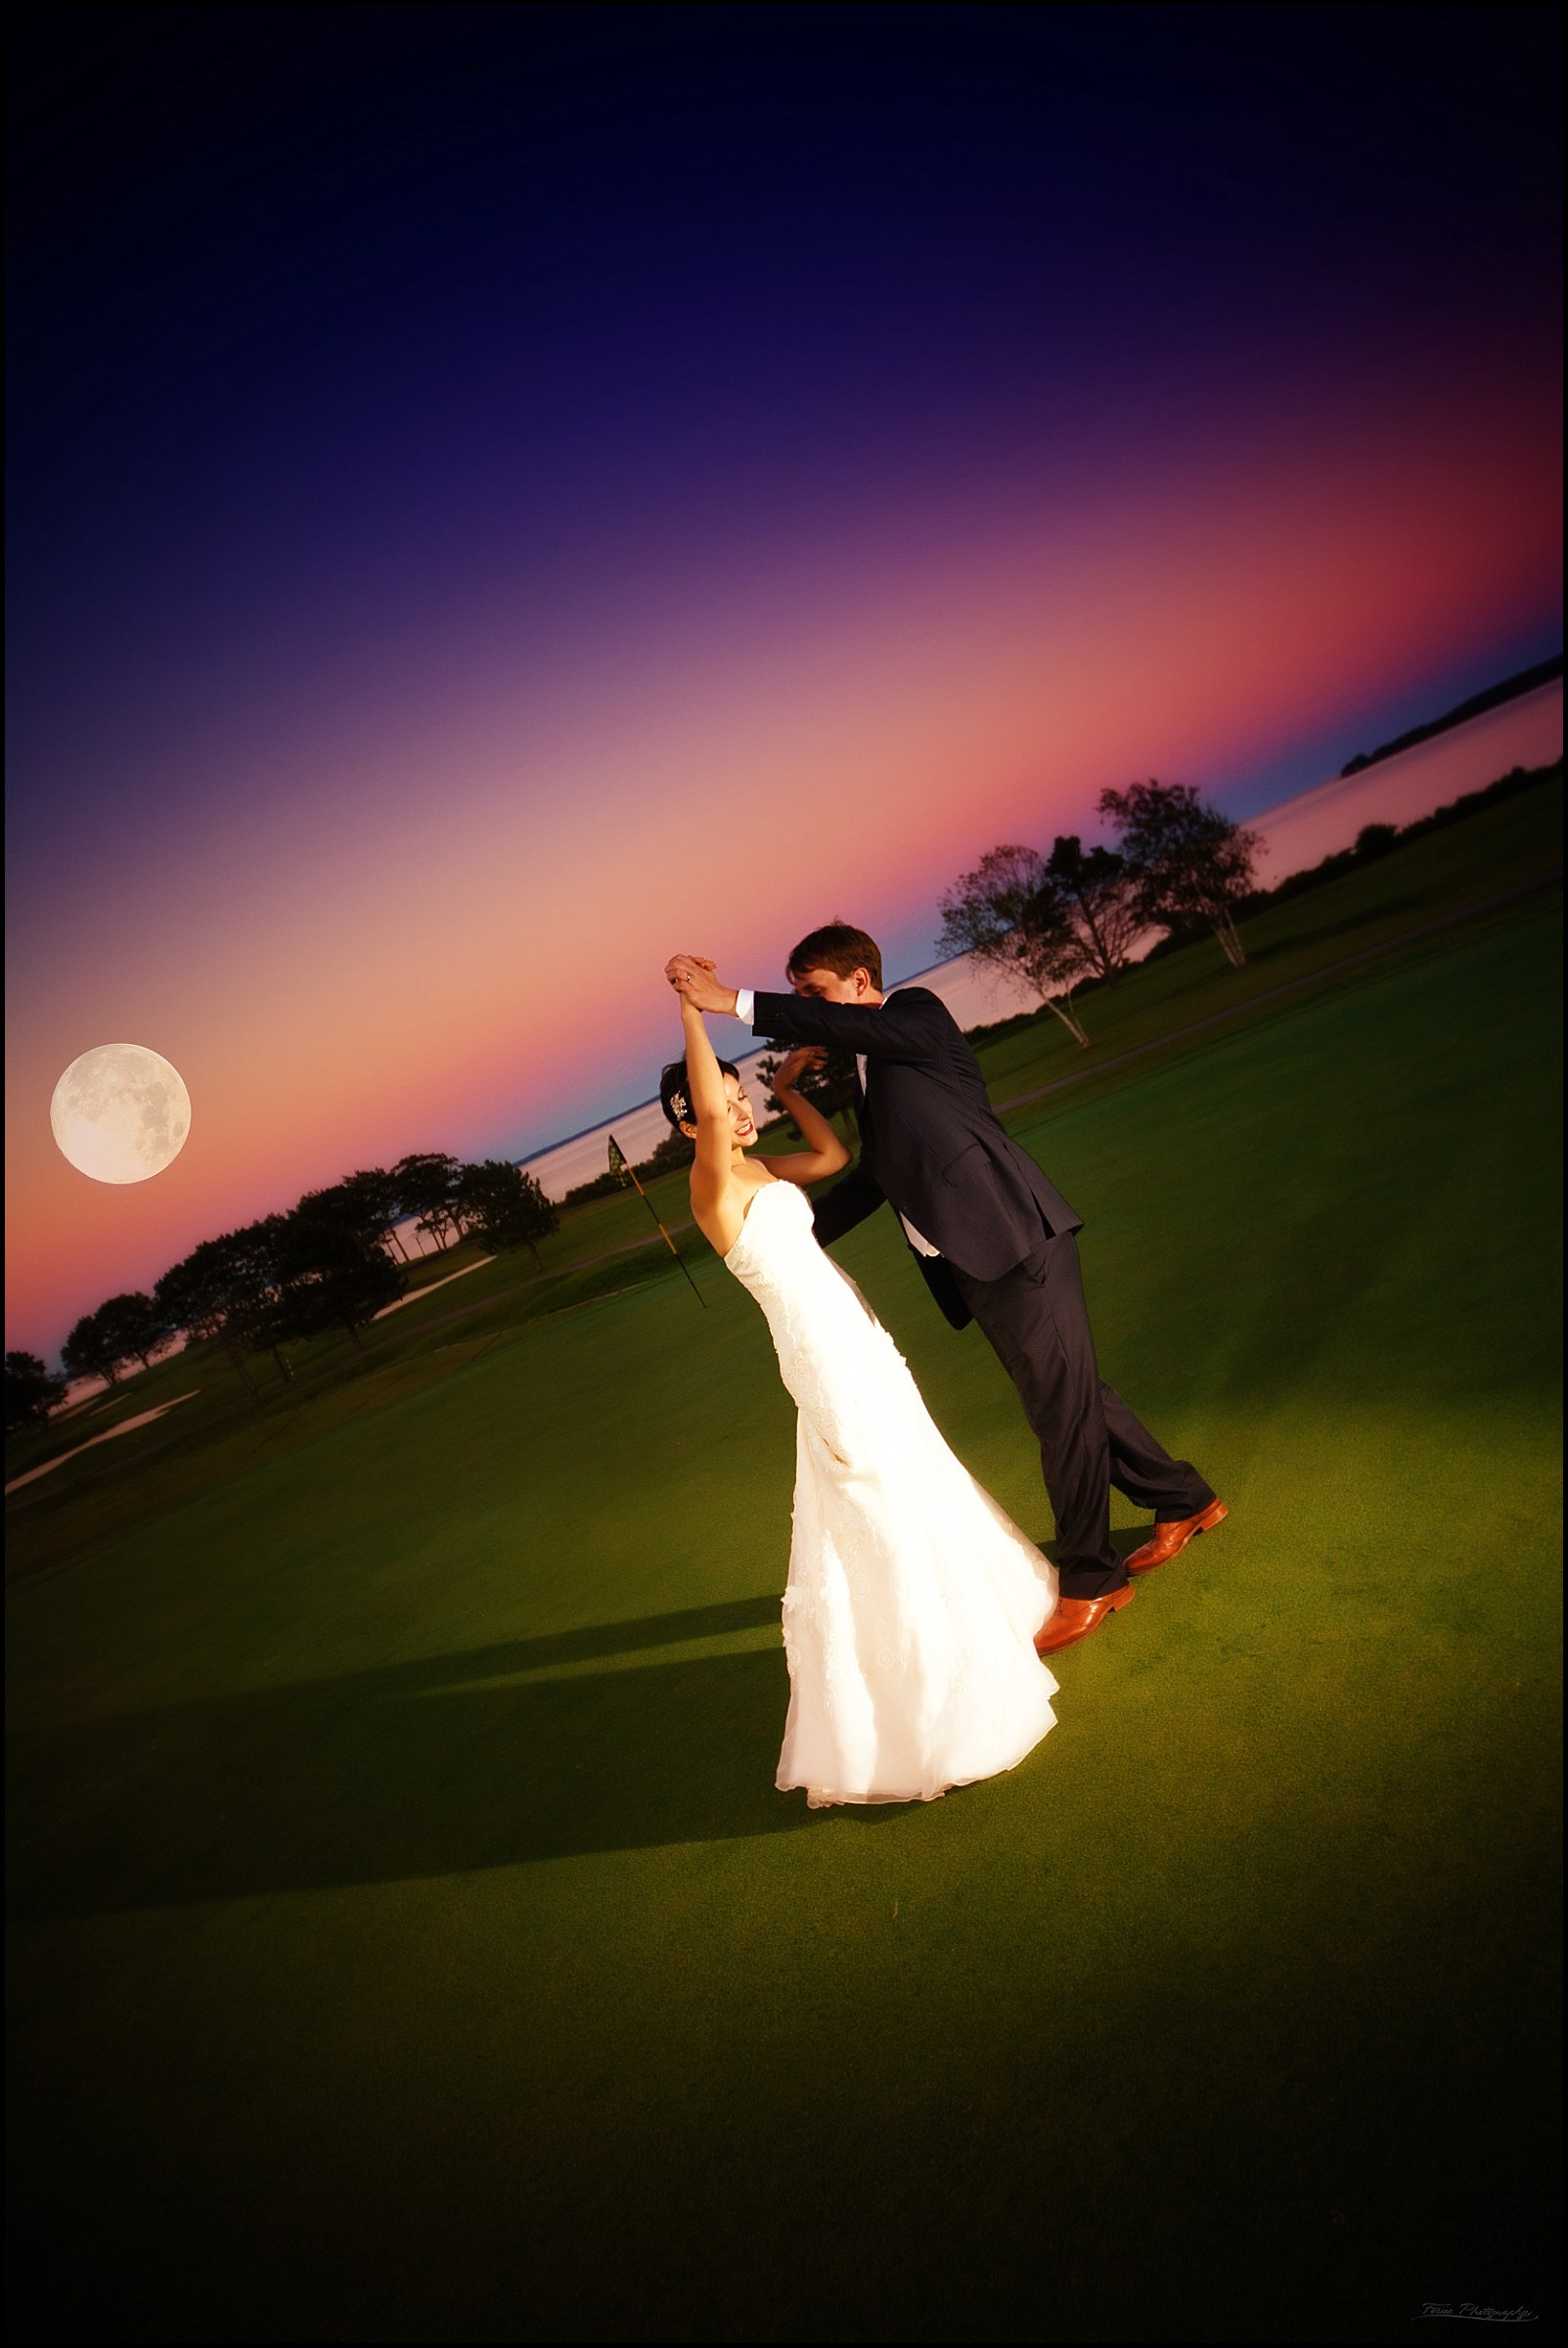 bridea and groom dancing on the golf course at twilight at samoset resort in rockport, me